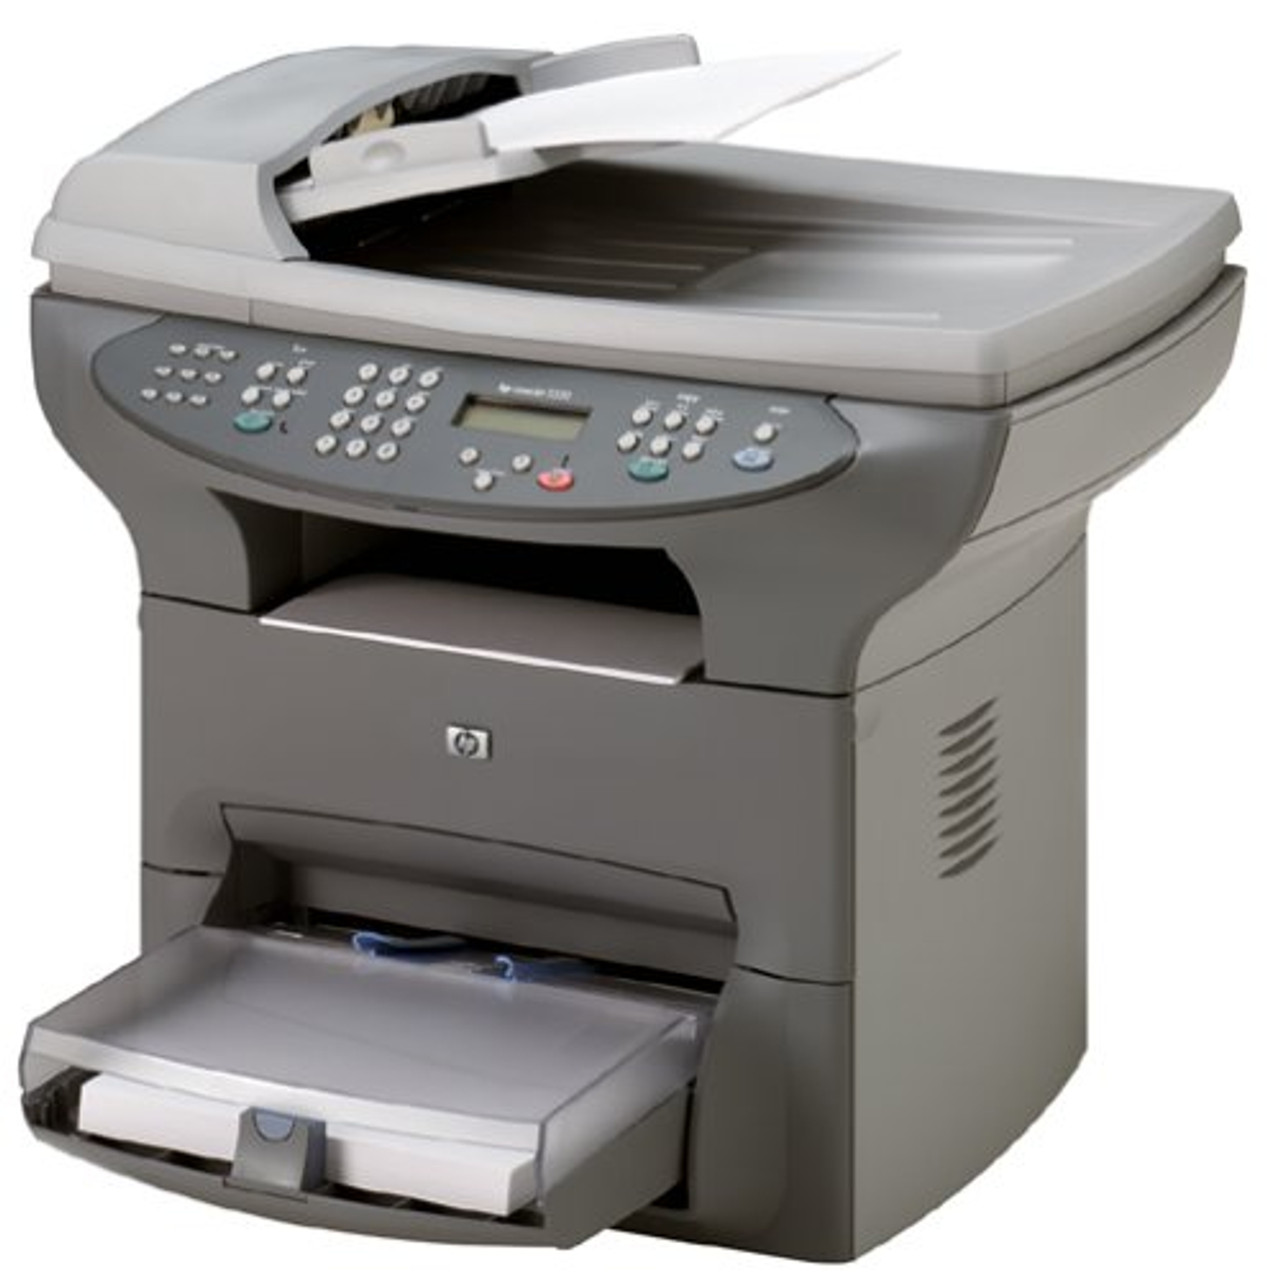 HP LaserJet 3330 MFP - C9126A - HP Laser Printer Copier Scanner Fax for sale